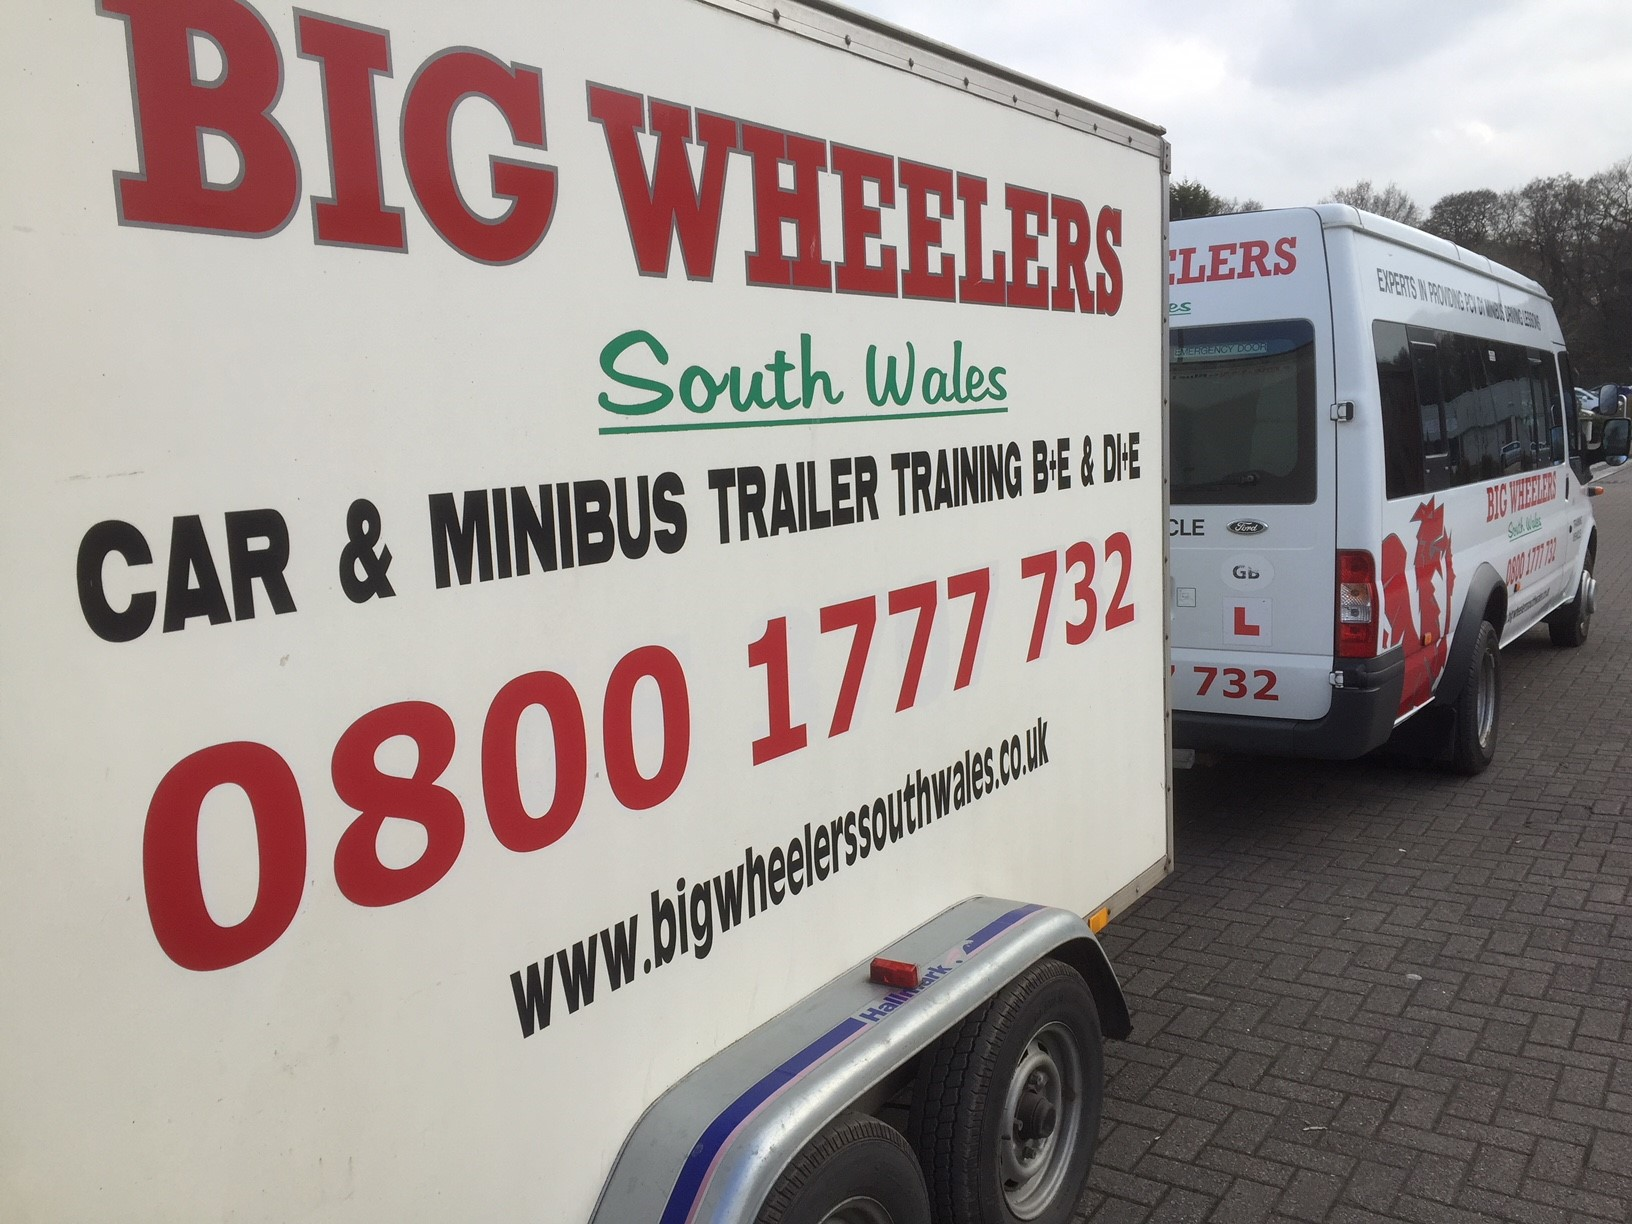 PCV D1+E (Minibus Towing a Trailer) Training Package (12 hours) – Using our Vehicle and Trailer